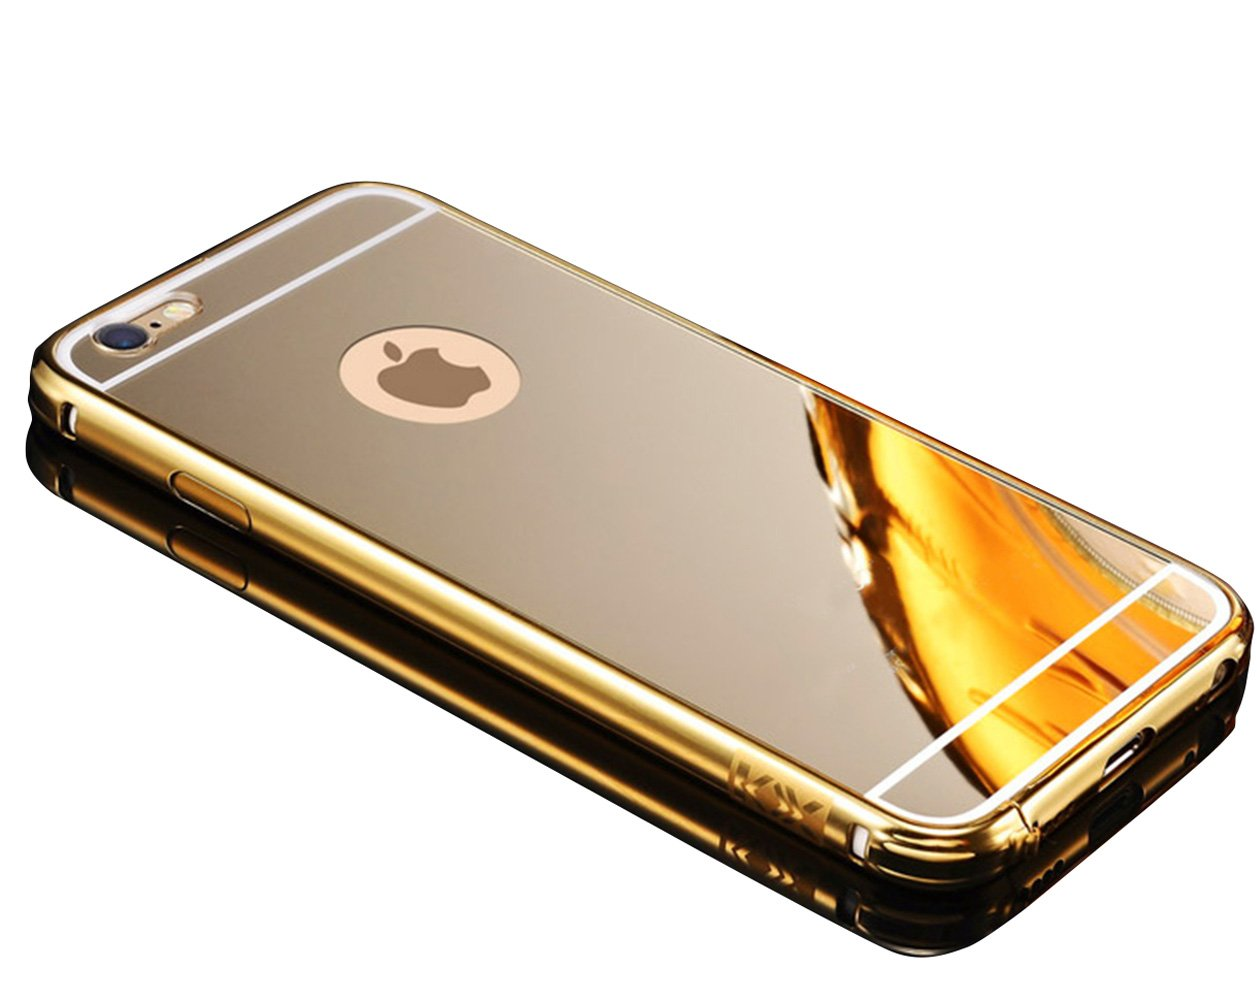 coque miroir iphone 4